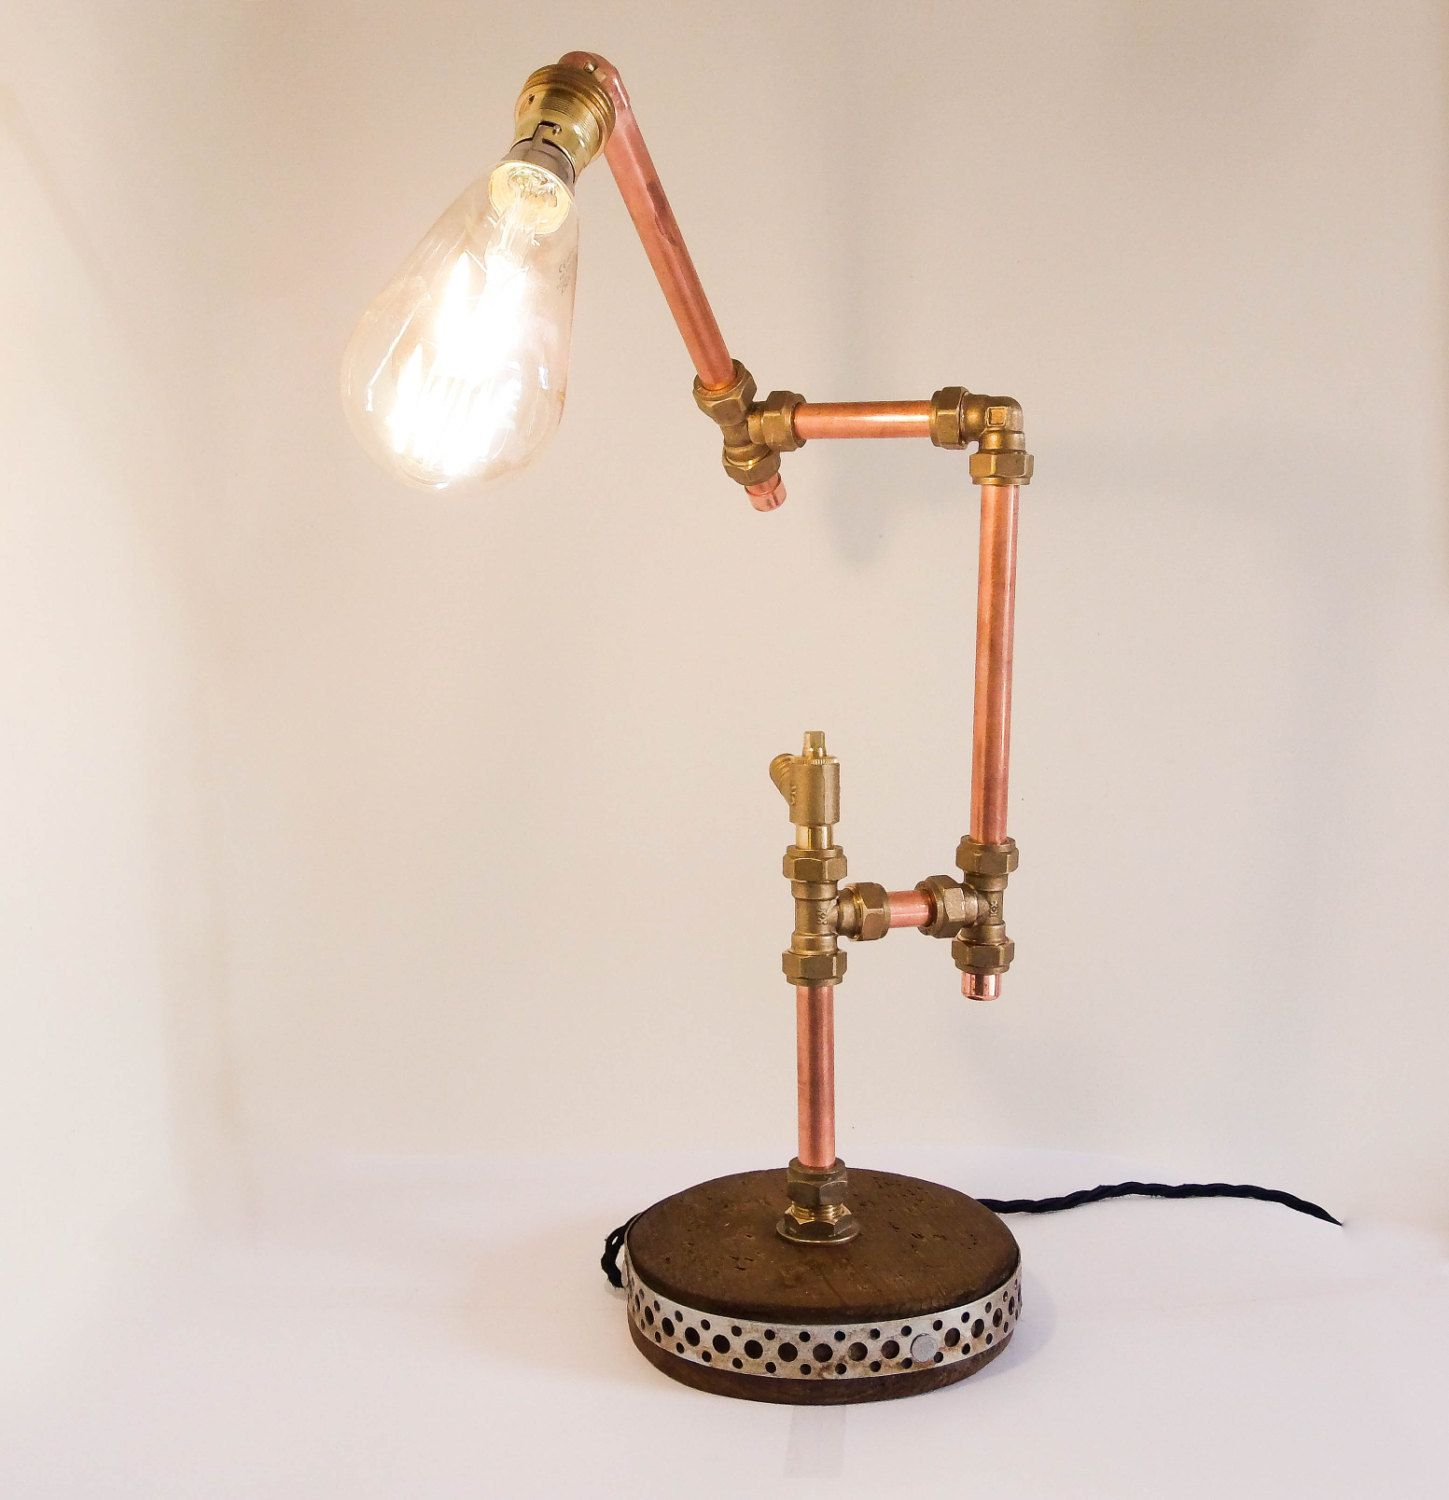 Industrial Design Coppertable Lamp Id Lights Desk Lamp Lamp Retro Table Lamps